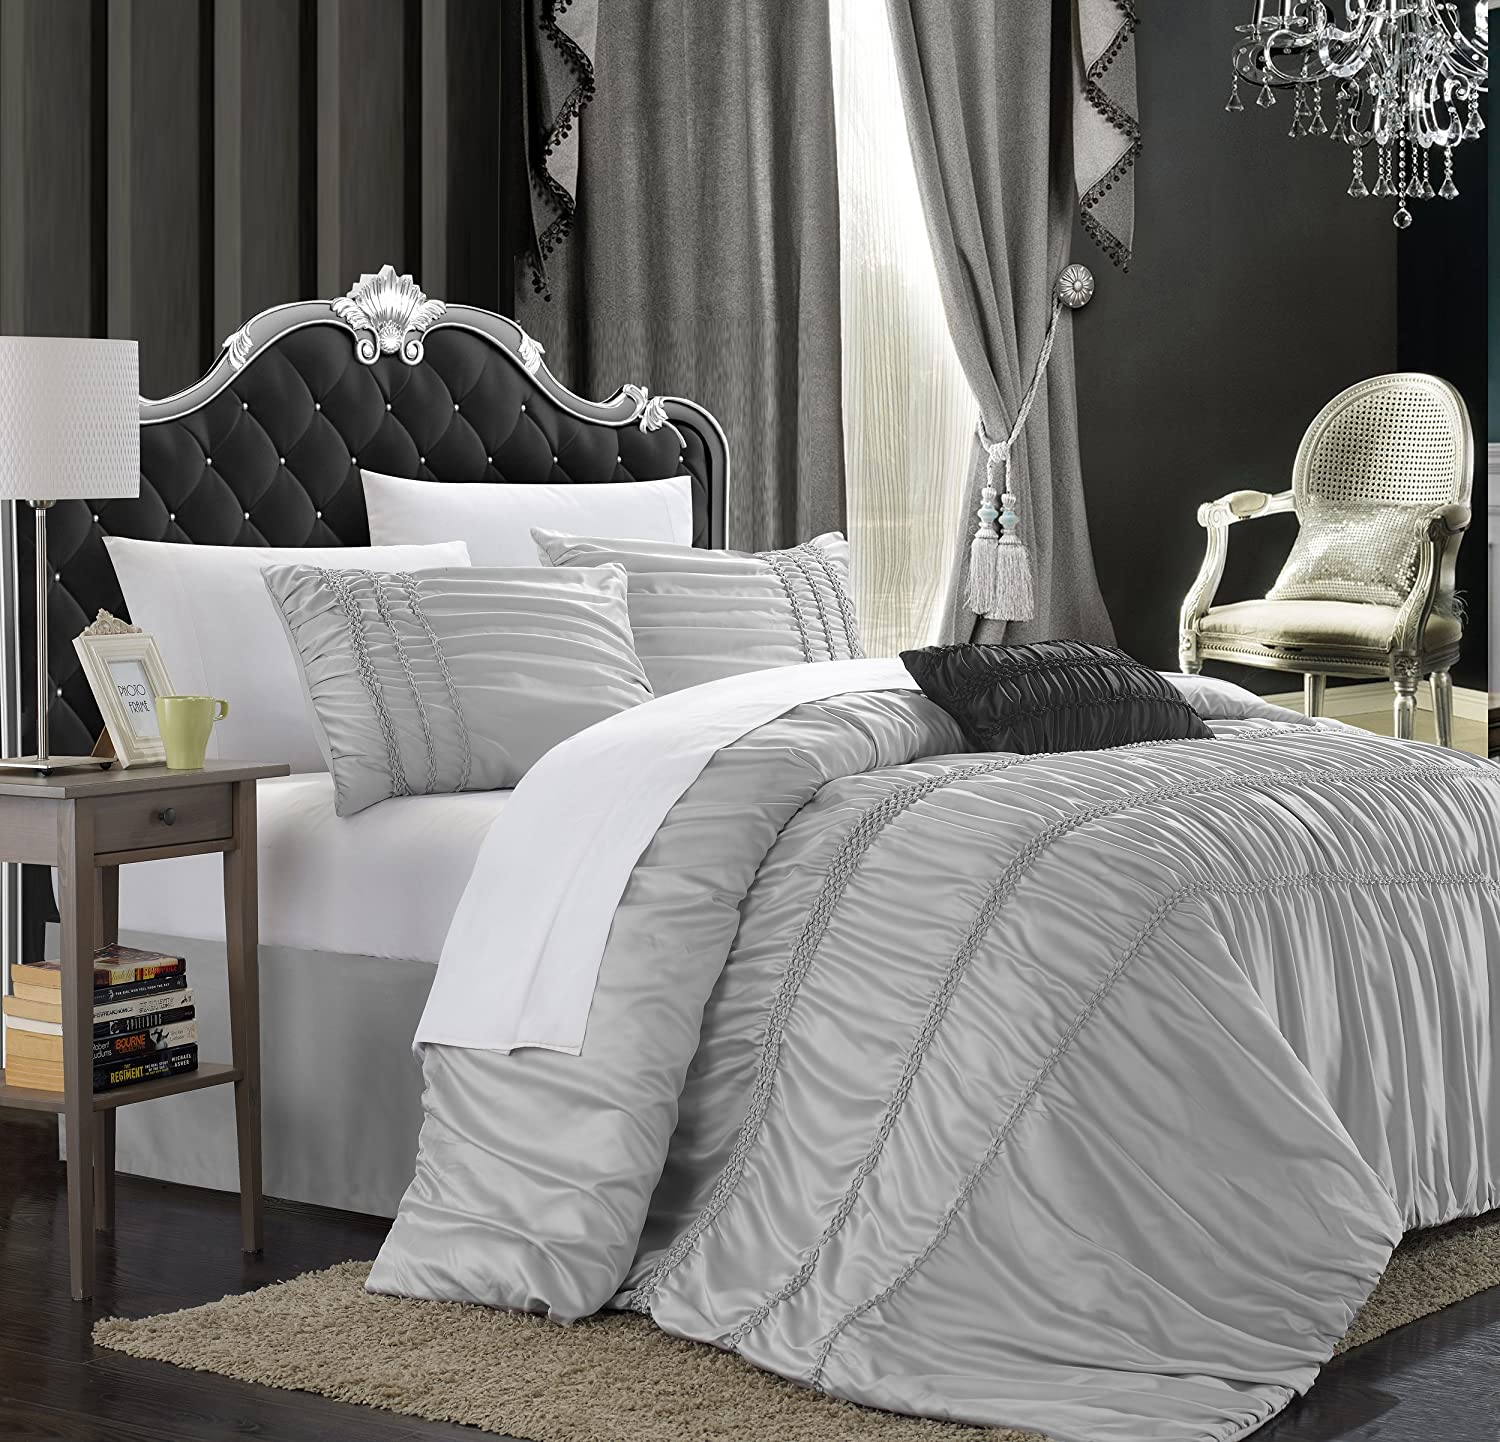 new zi comforter j p dillards york silver queen set guiliana